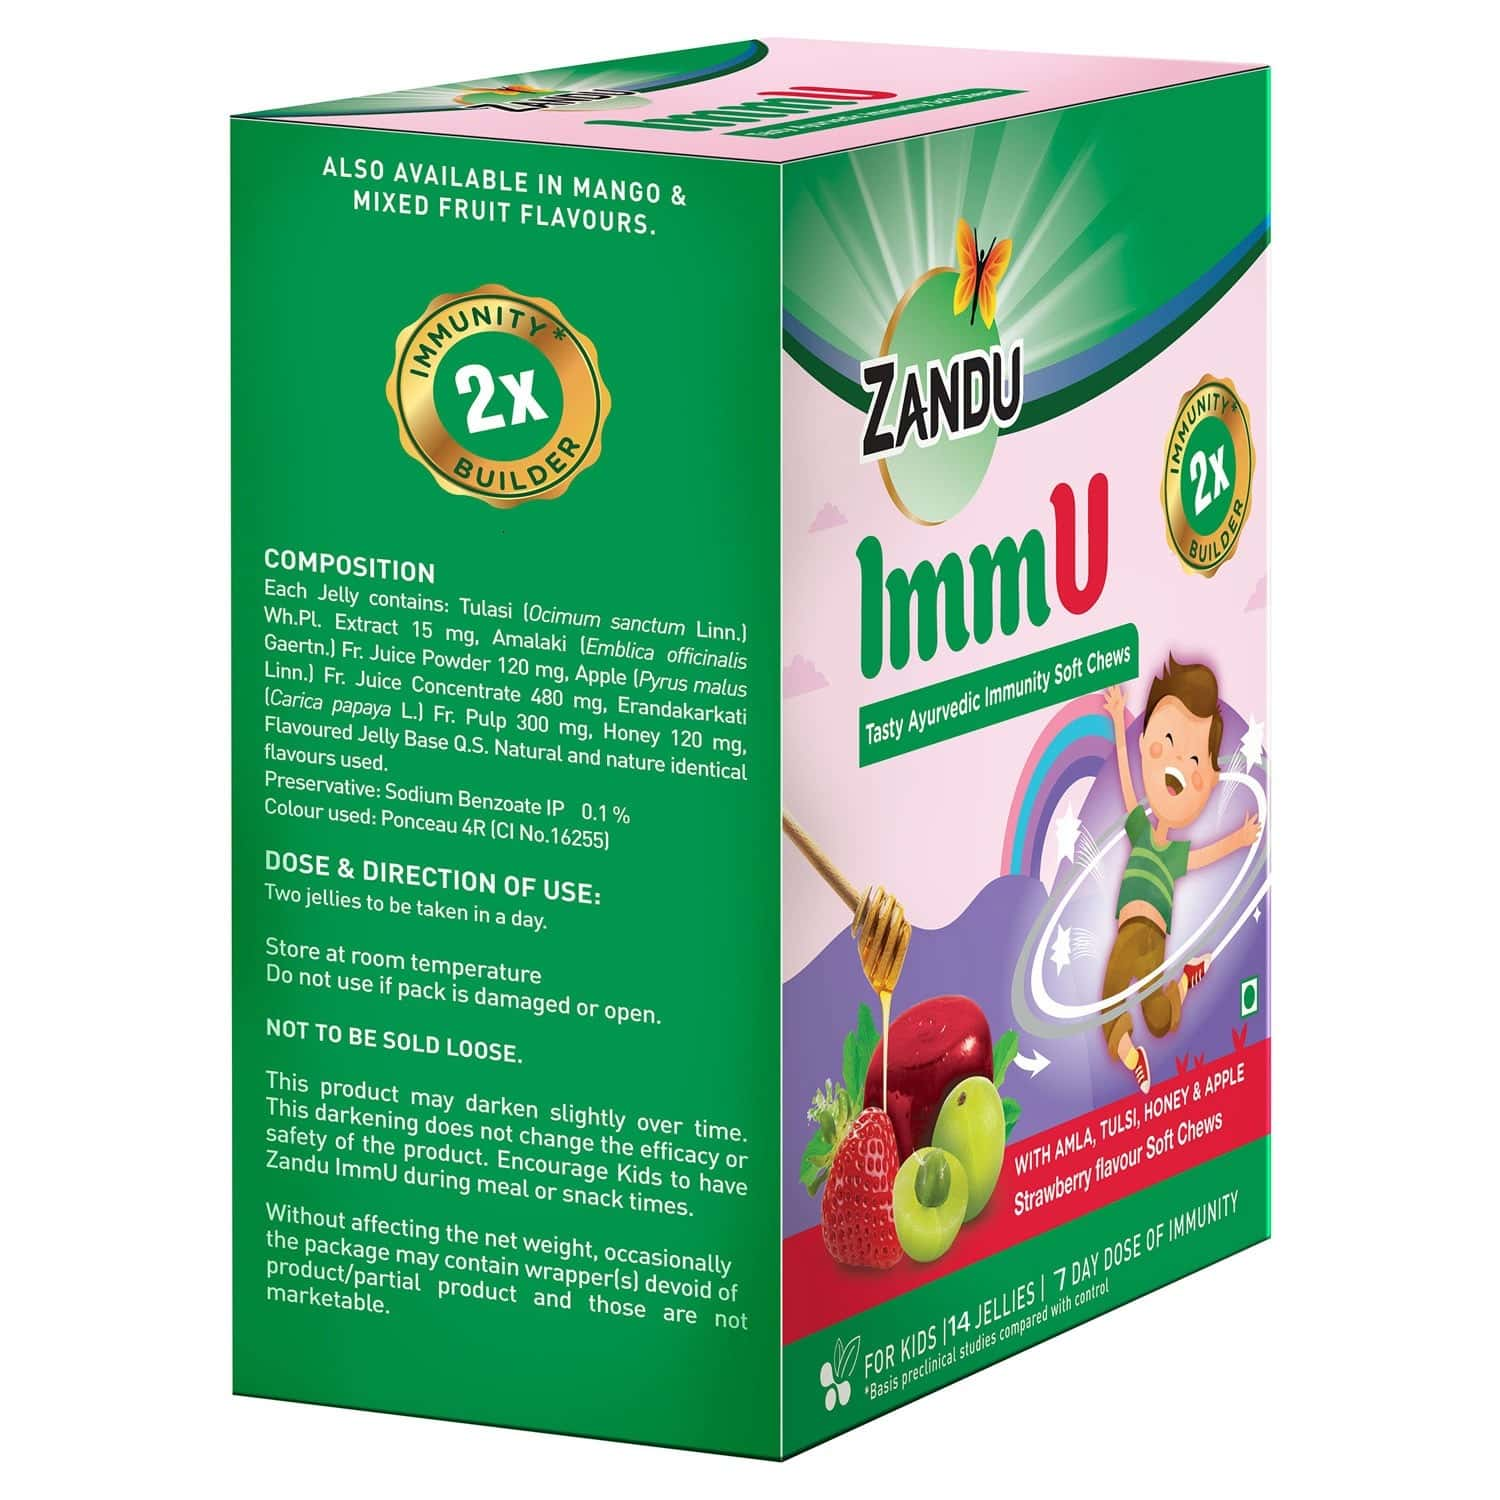 Zandu Immu Tasty Ayurvedic Strawberry Immunity Soft Chews Packet Of 14